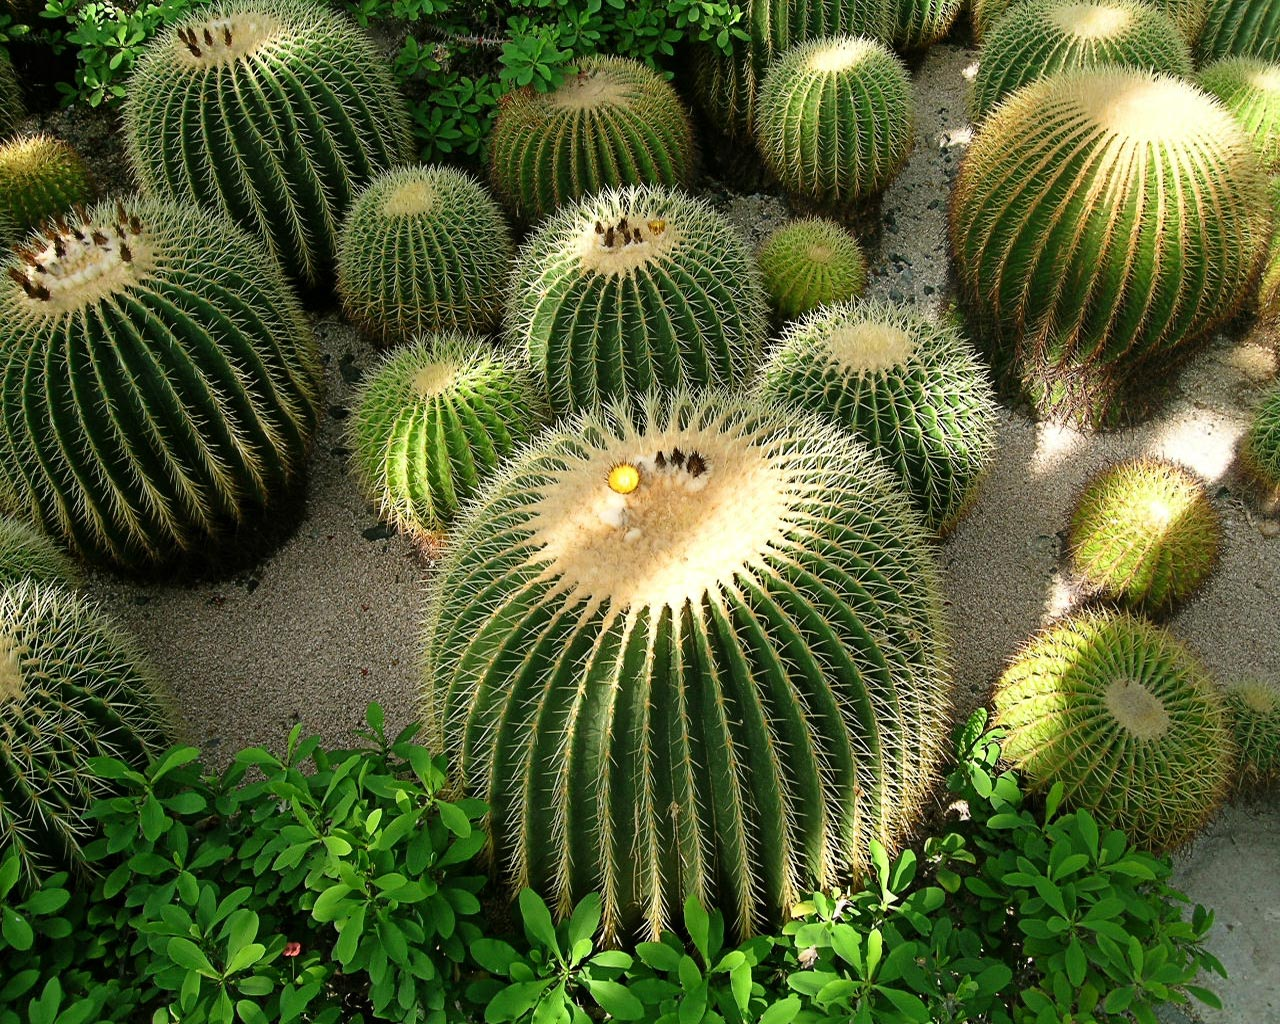 deserts cactus - photo #24